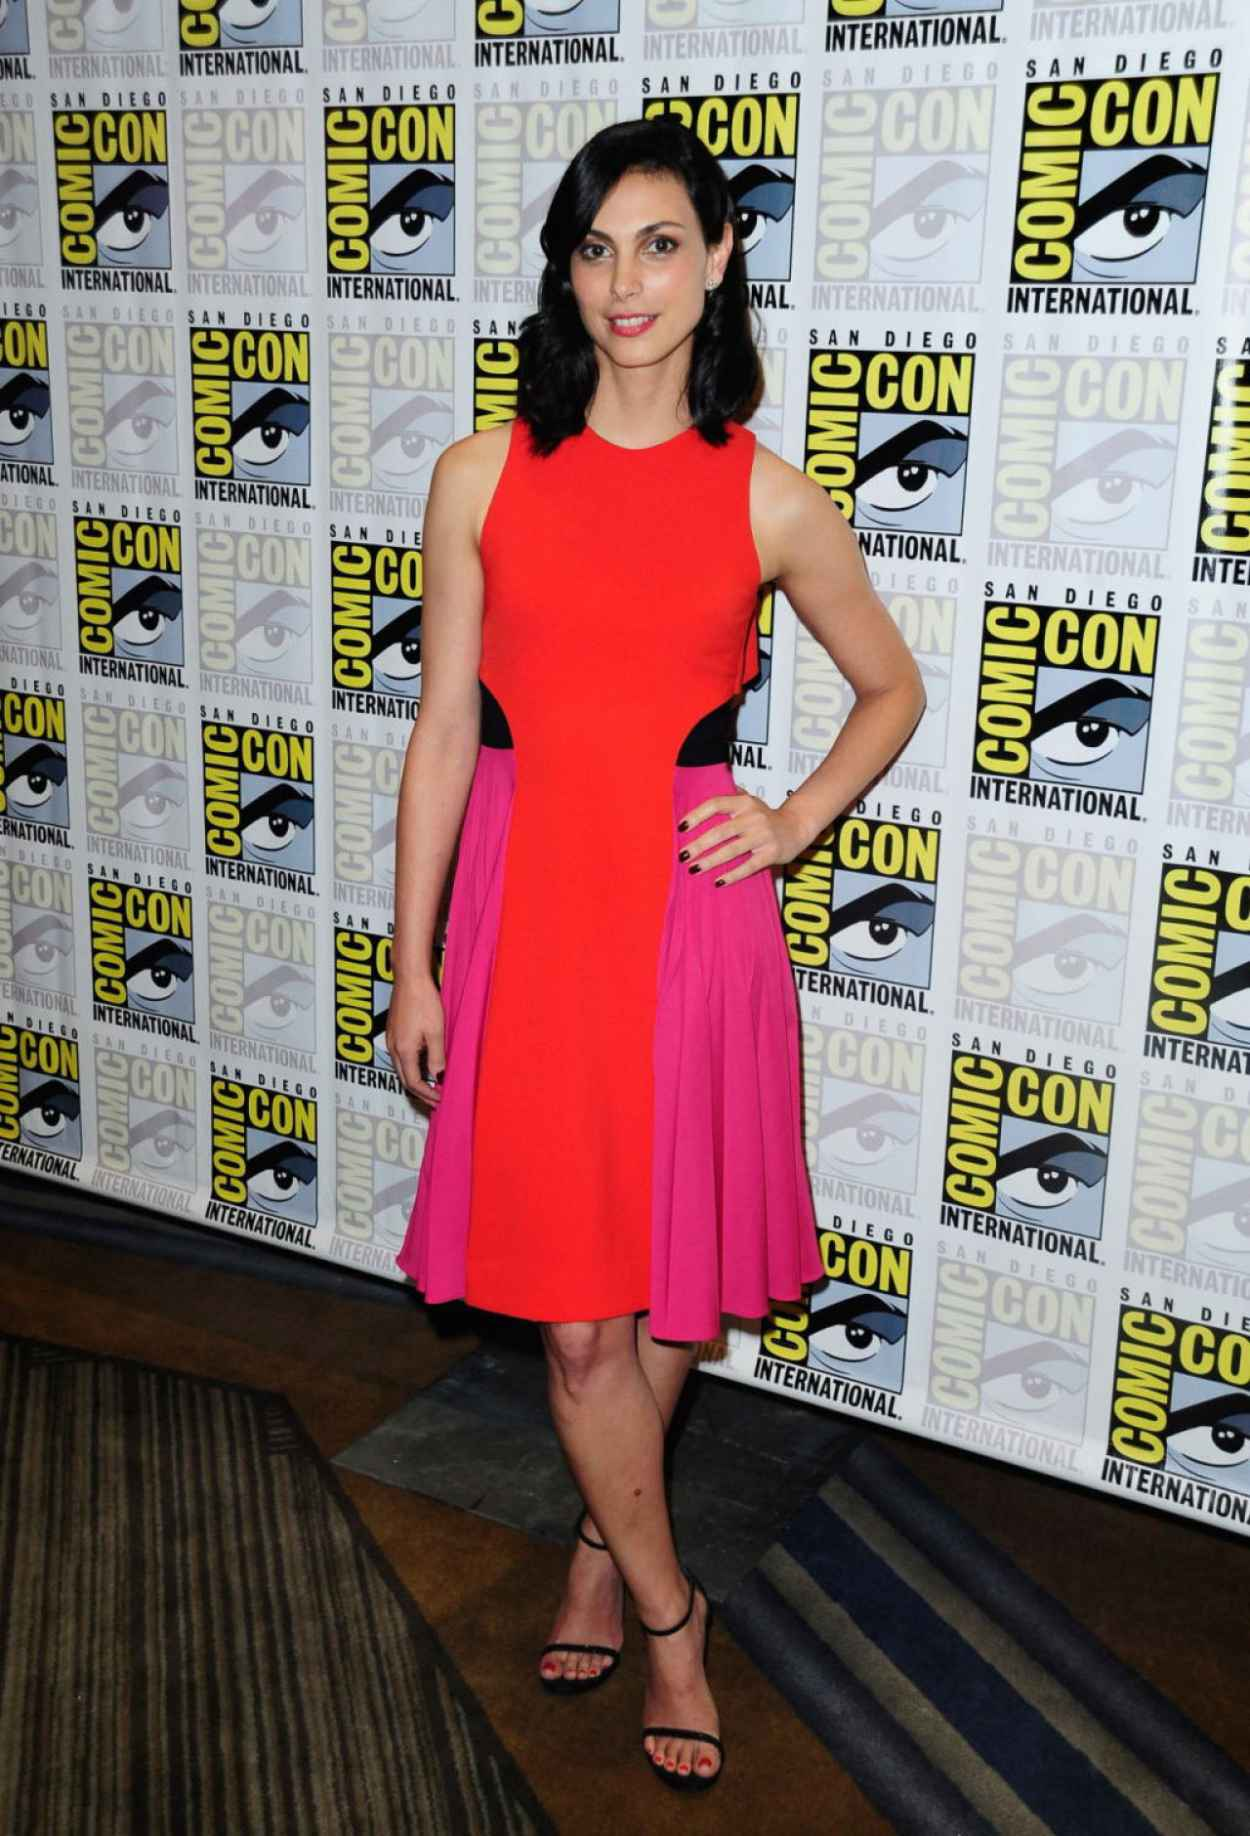 Morena Baccarin - Gotham Press Line at Comic Con in San Diego-2